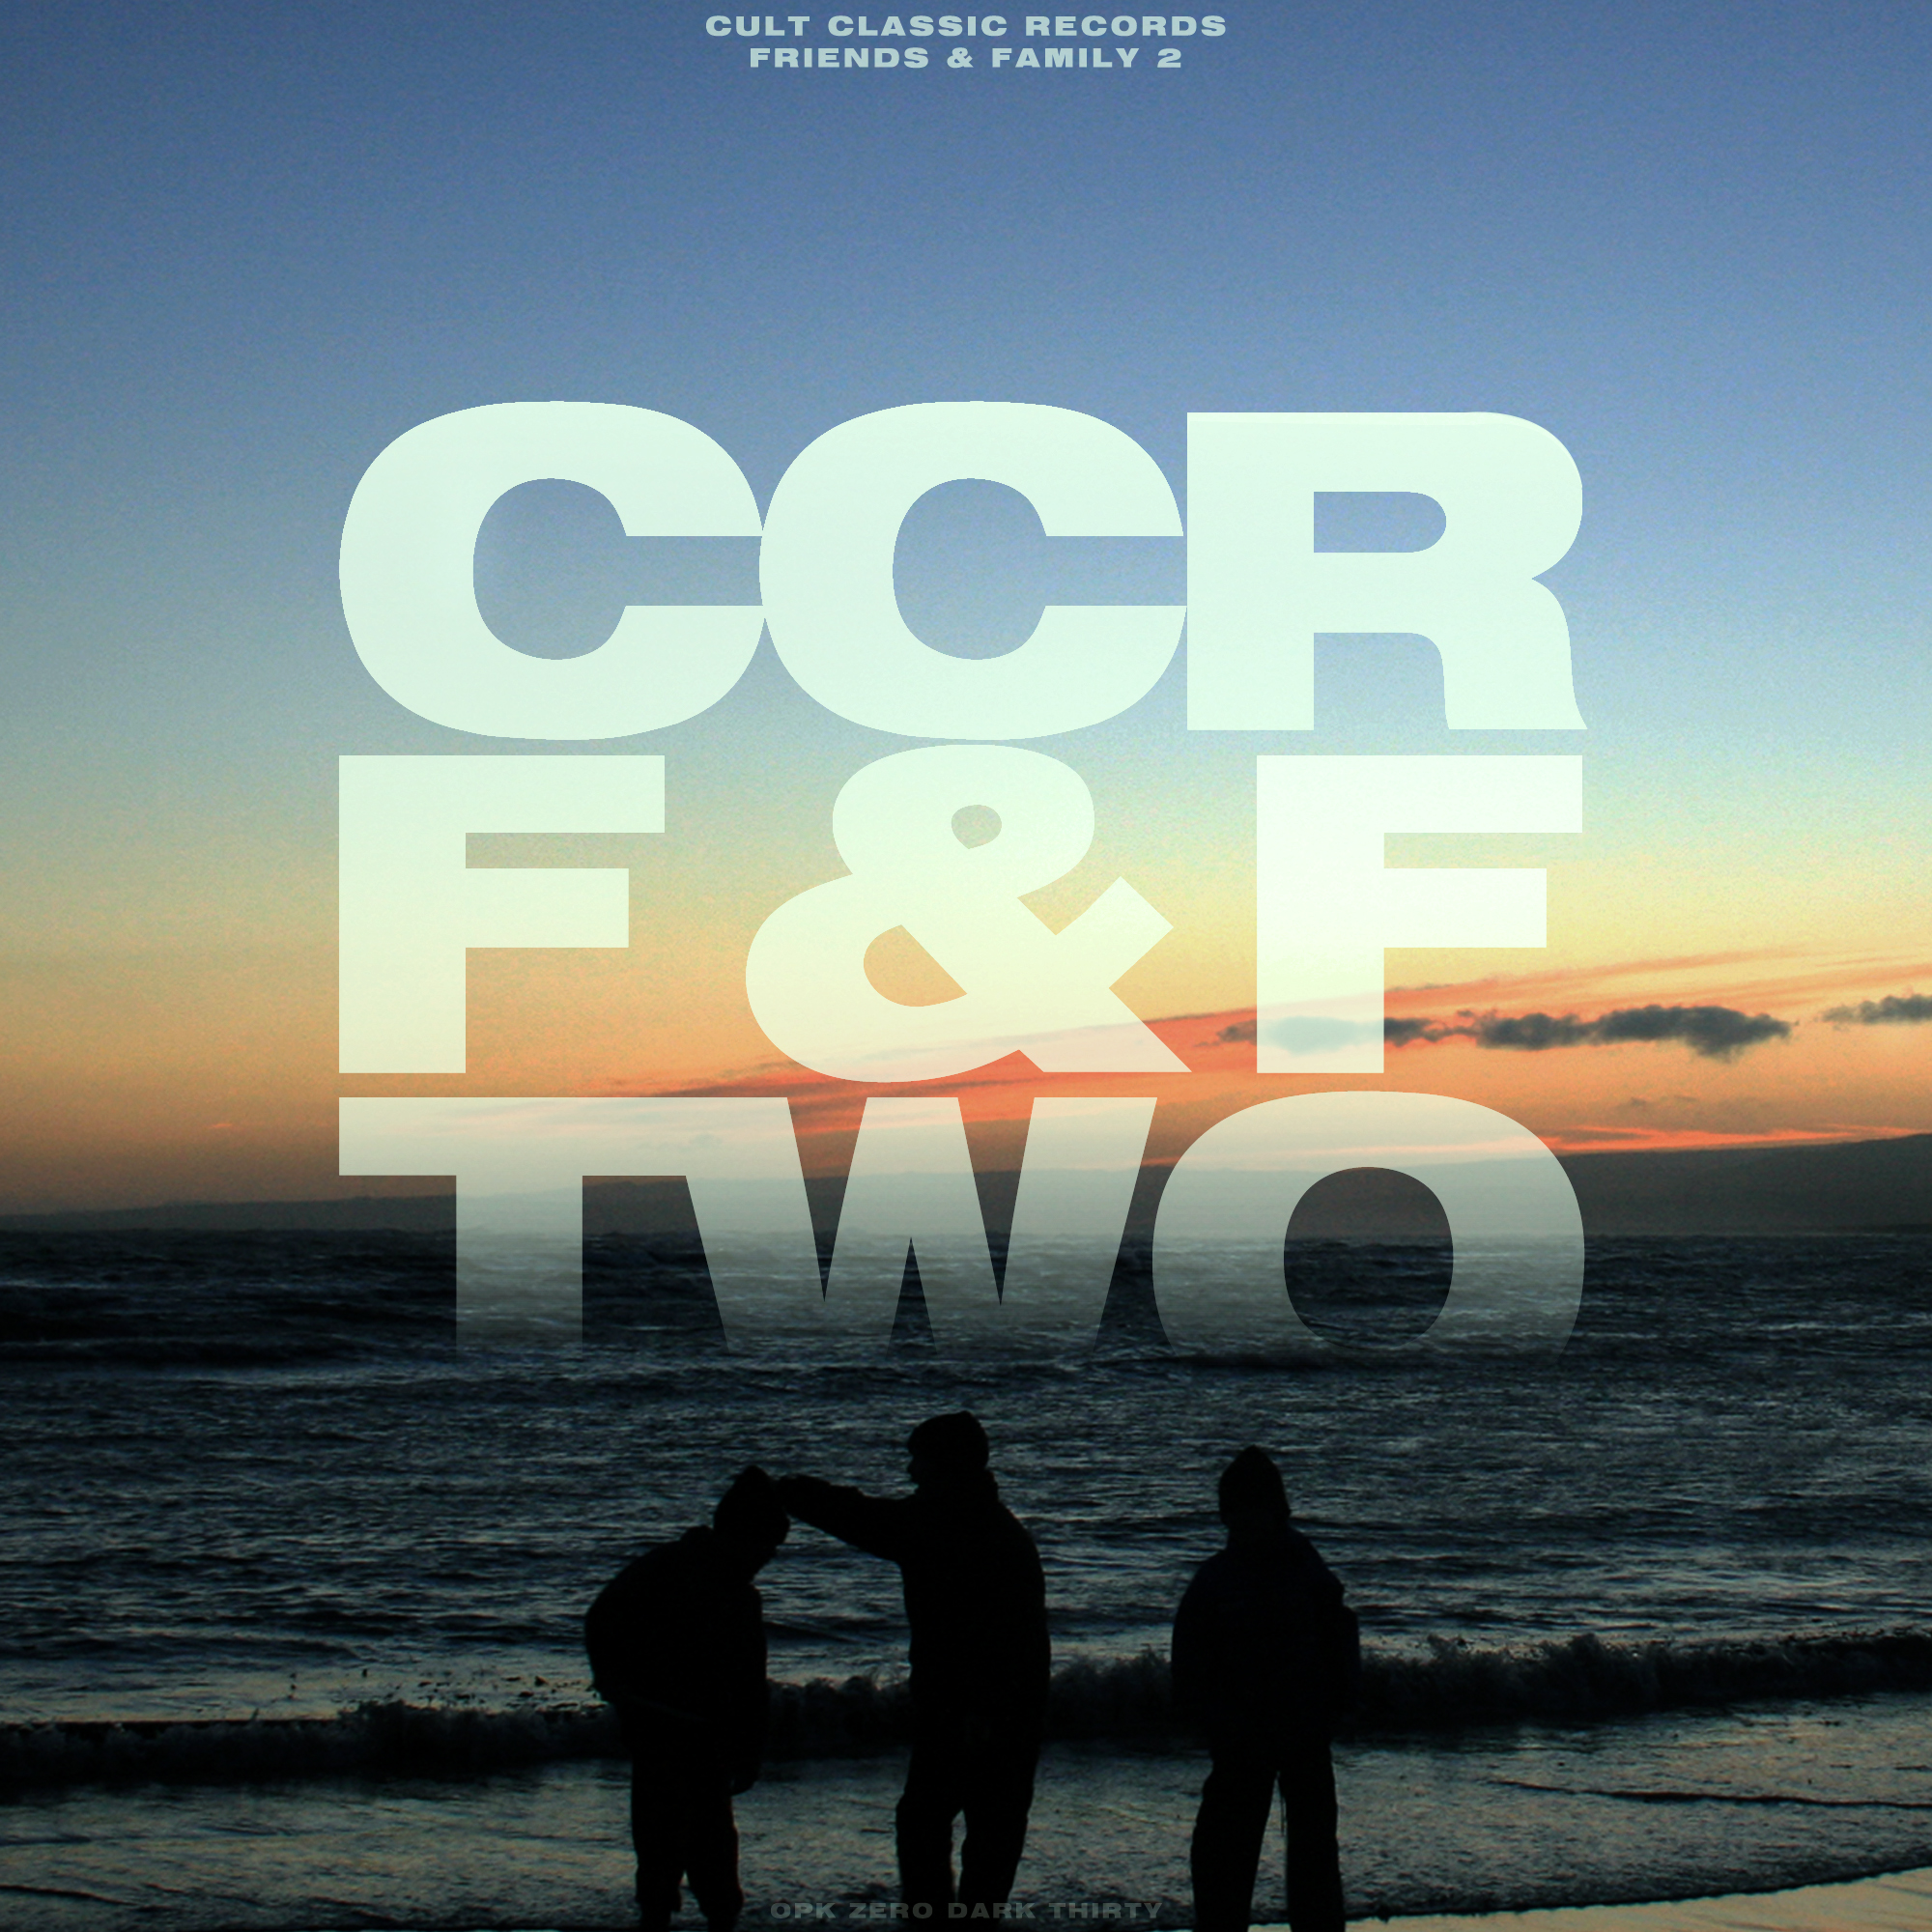 Free Download: Cult Classic Records – Friends & Family 2